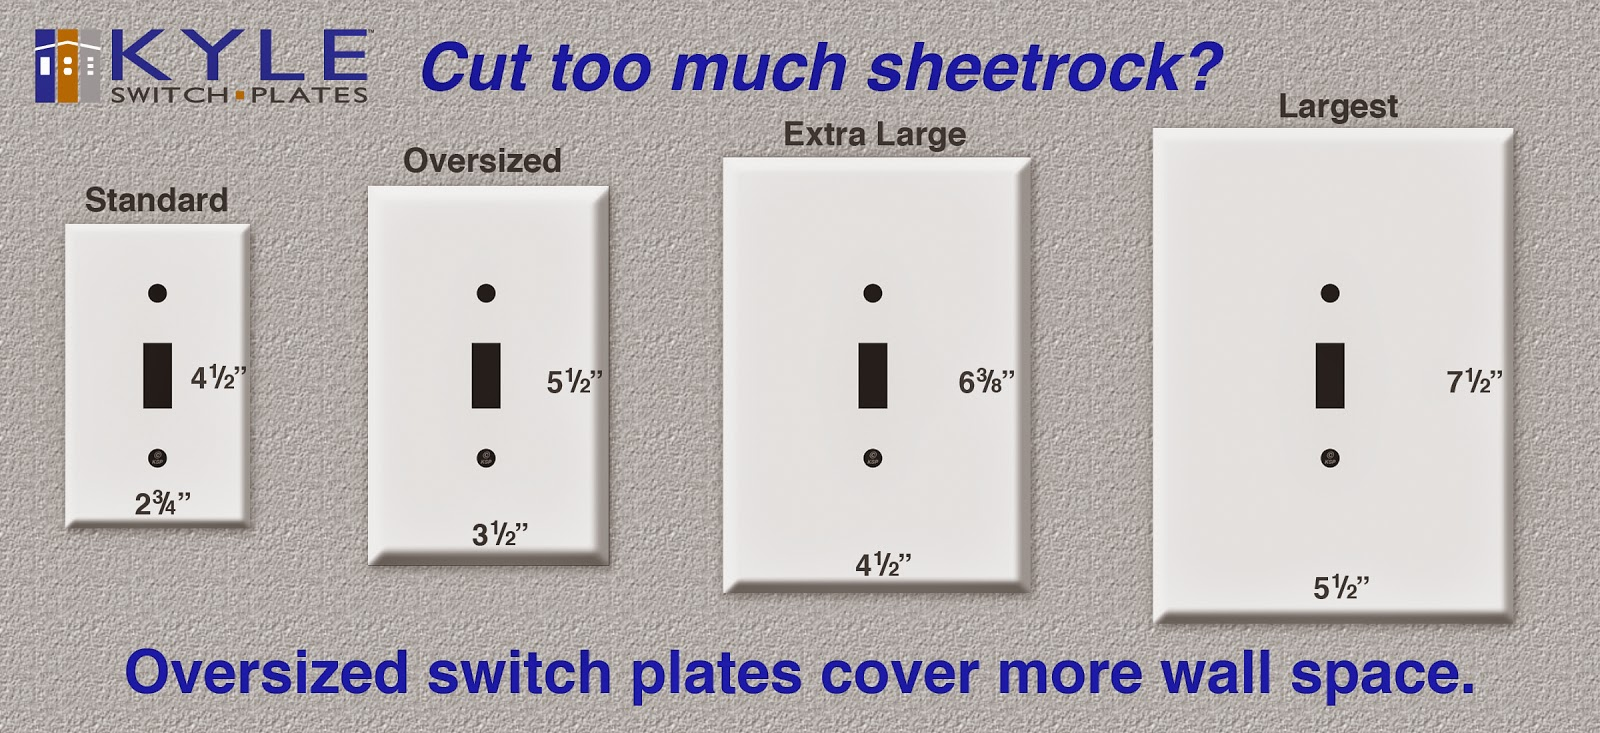 Outlet Switch Covers Kyle Switch Plates 2014